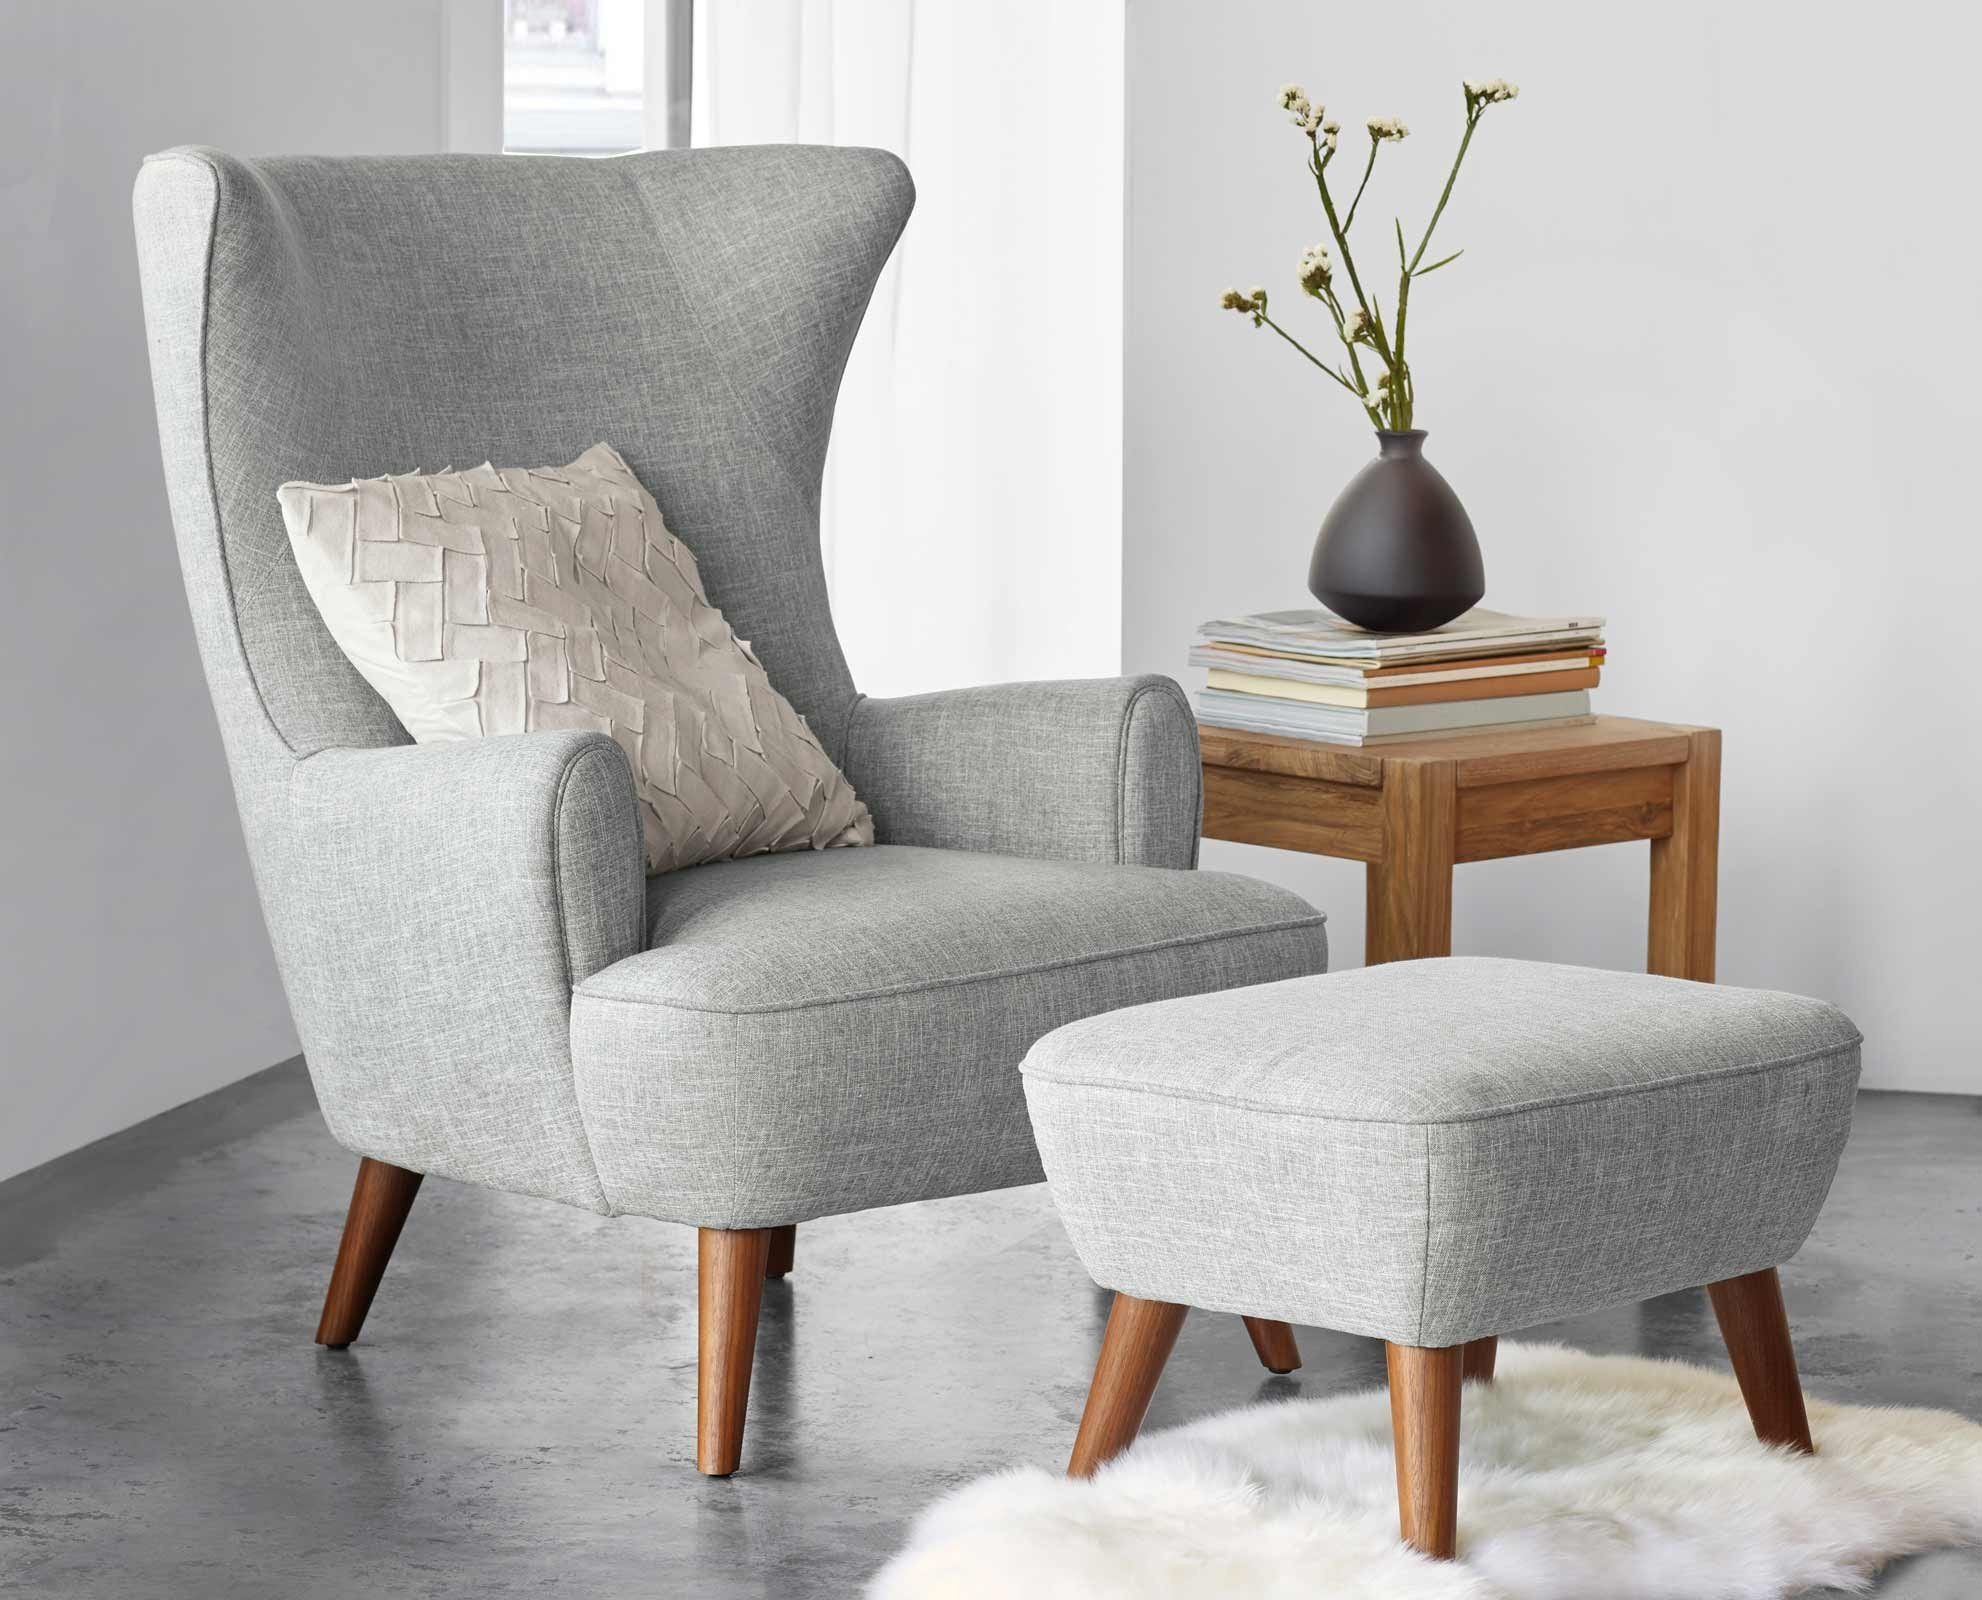 Charmant Katja High Back Chair From Dania Furniture. With An Overall Classic  Profile, The Lines Of The Katja High Back Chair Add Visual Interest To Your  Space.